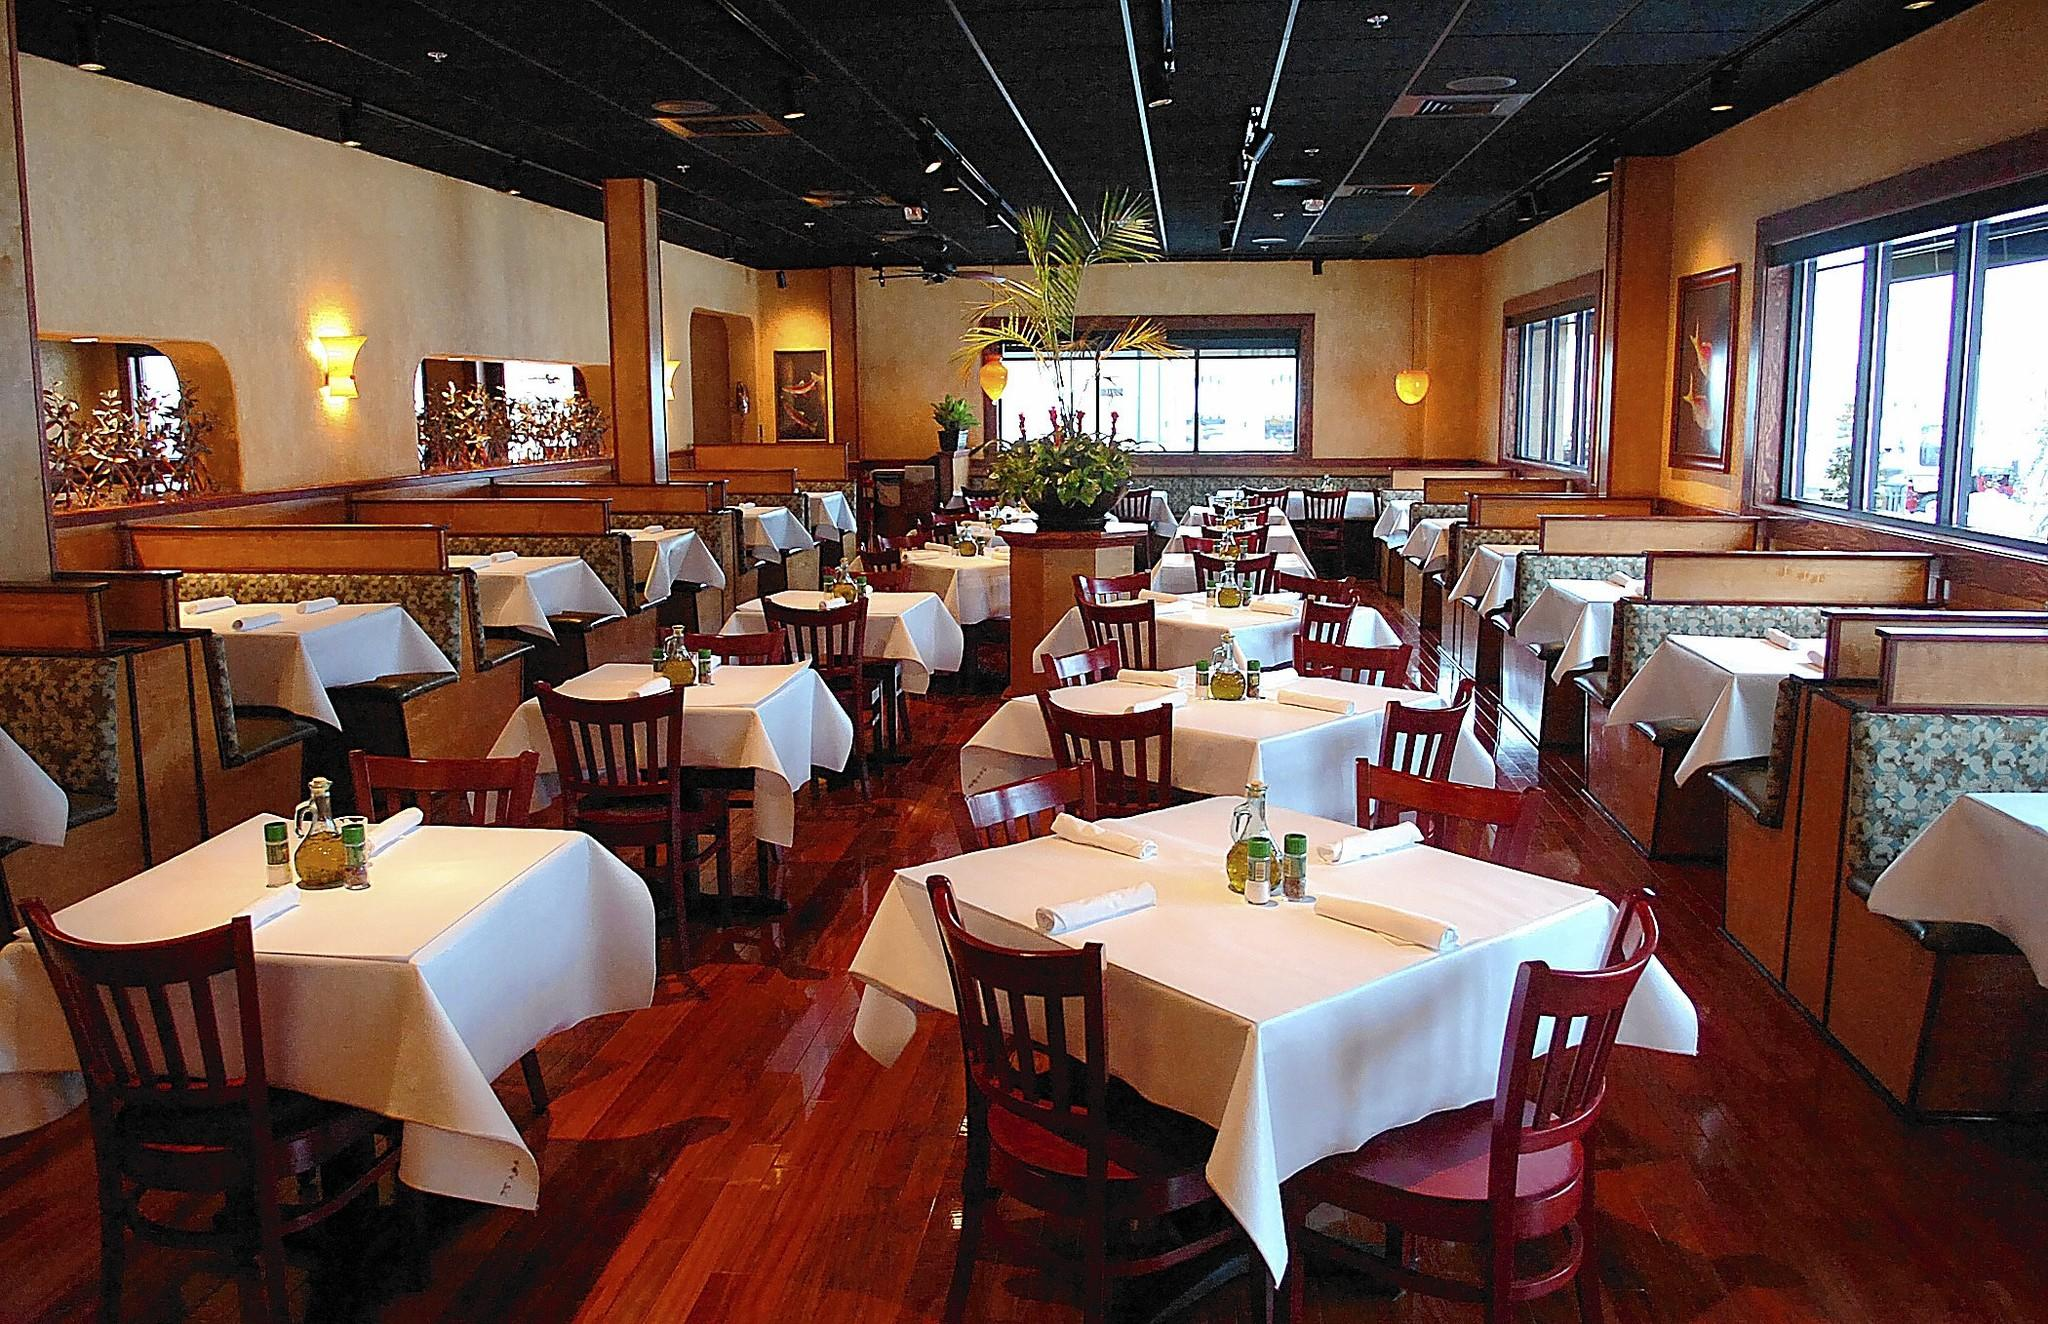 Bonefish Grill is among 15 restaurants participating in March into Restaurant Month in Whitehall.